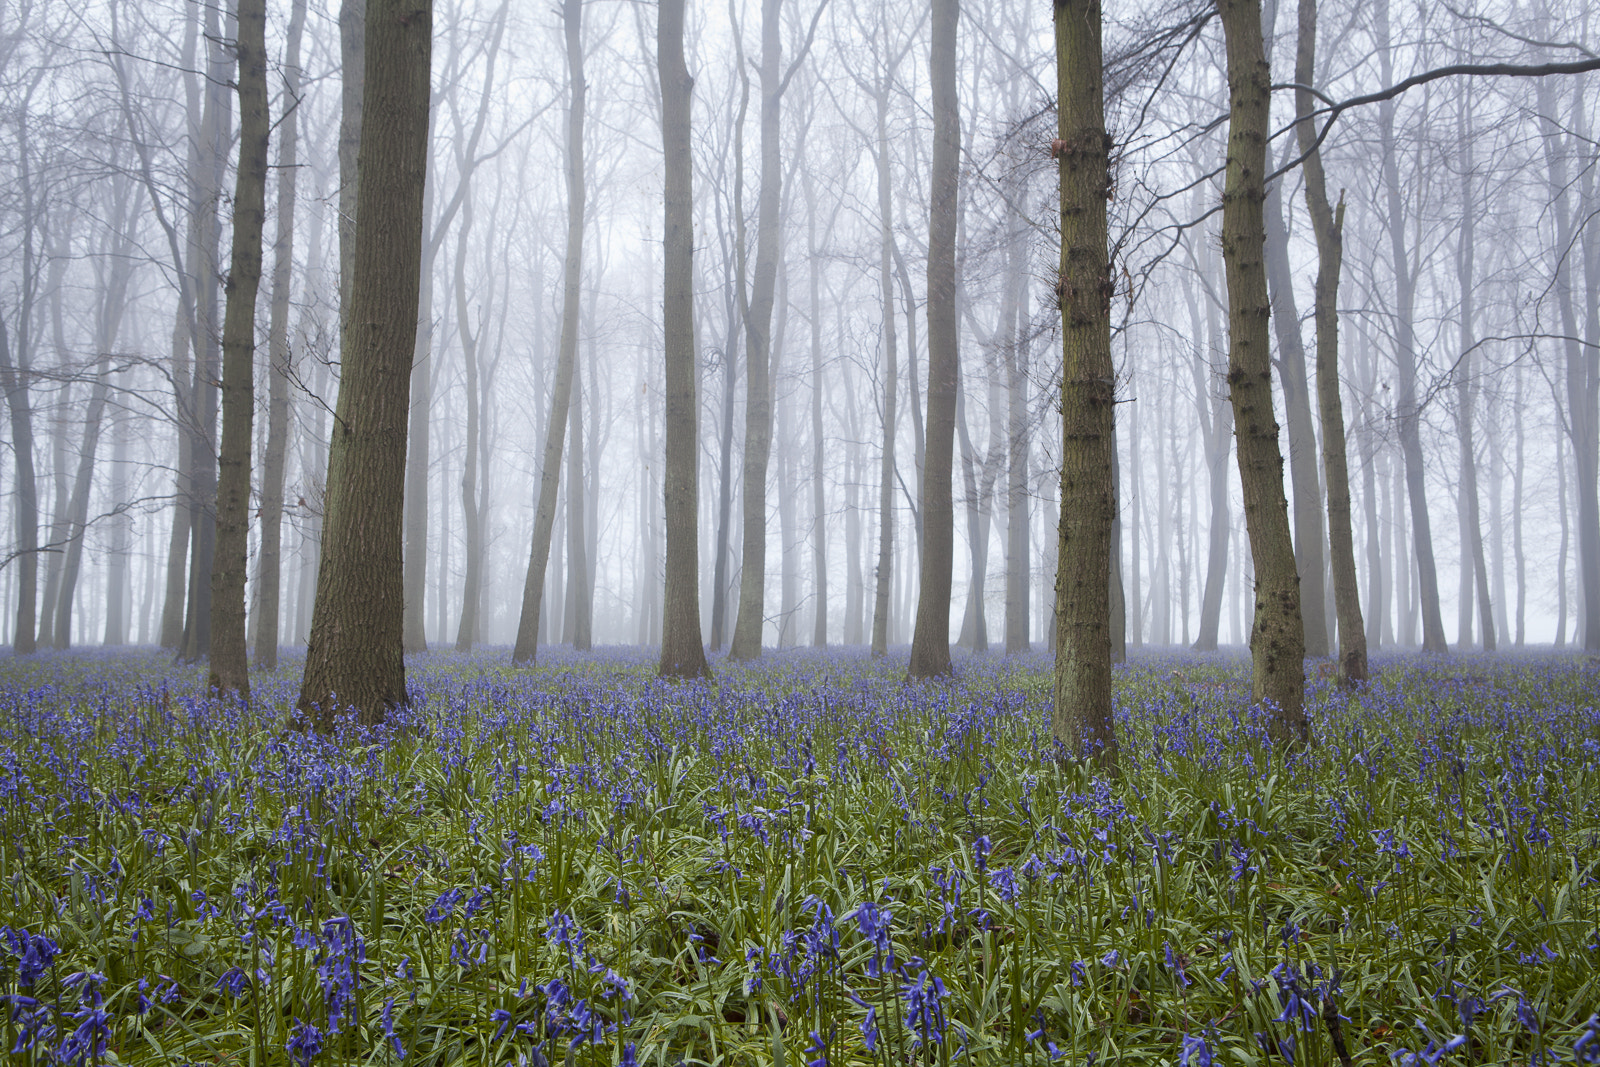 Photograph Bluebells ii by Terry Gibbins on 500px